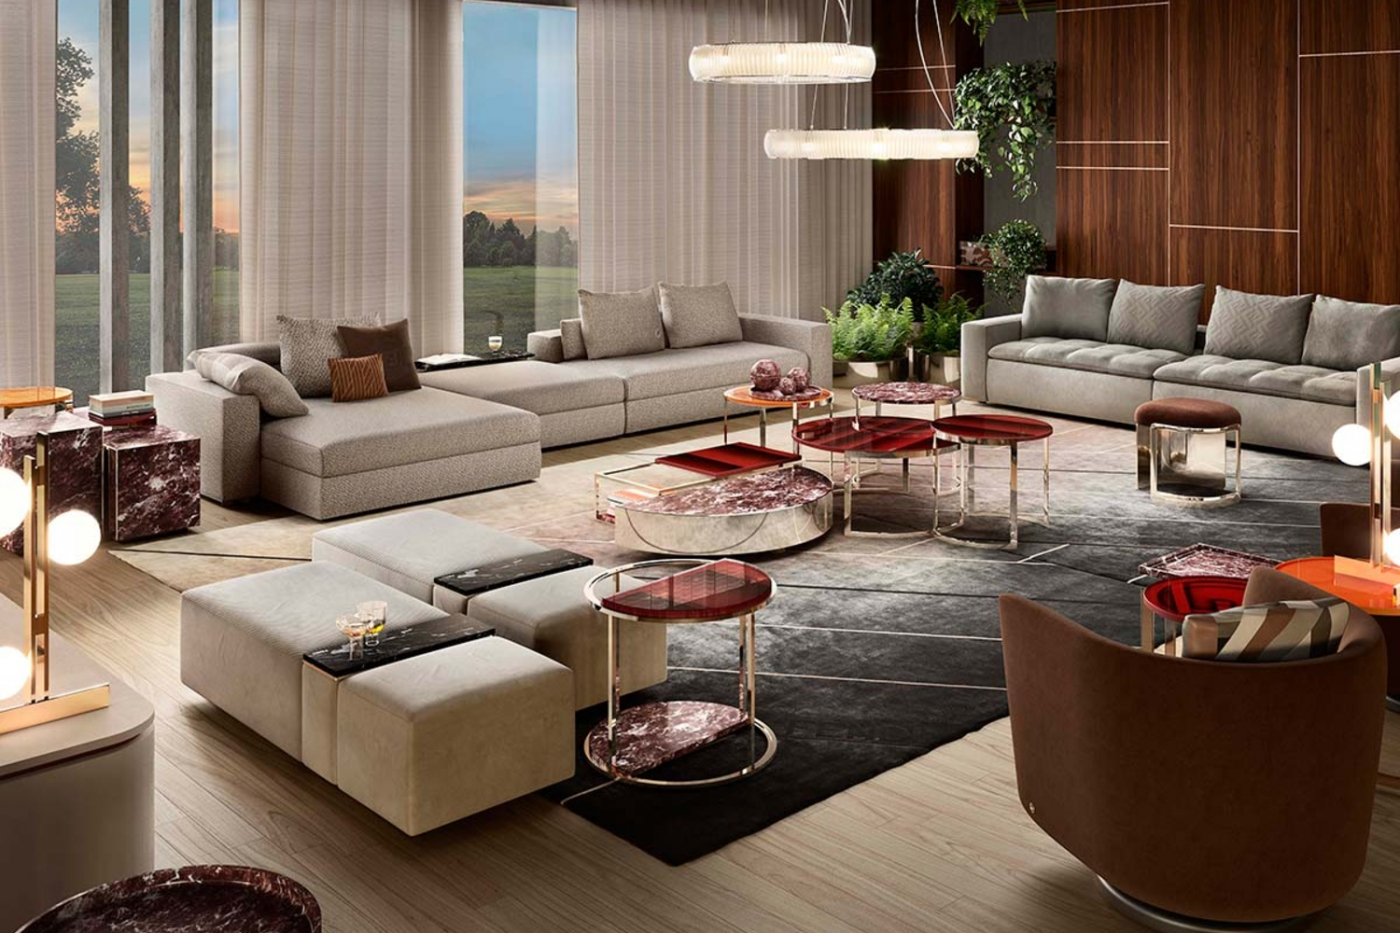 luxury showrooms Where To Shop – The Best Luxury Showrooms In Jakarta Where To Shop The Best Luxury Showrooms In Jakarta 13 1 1400x933